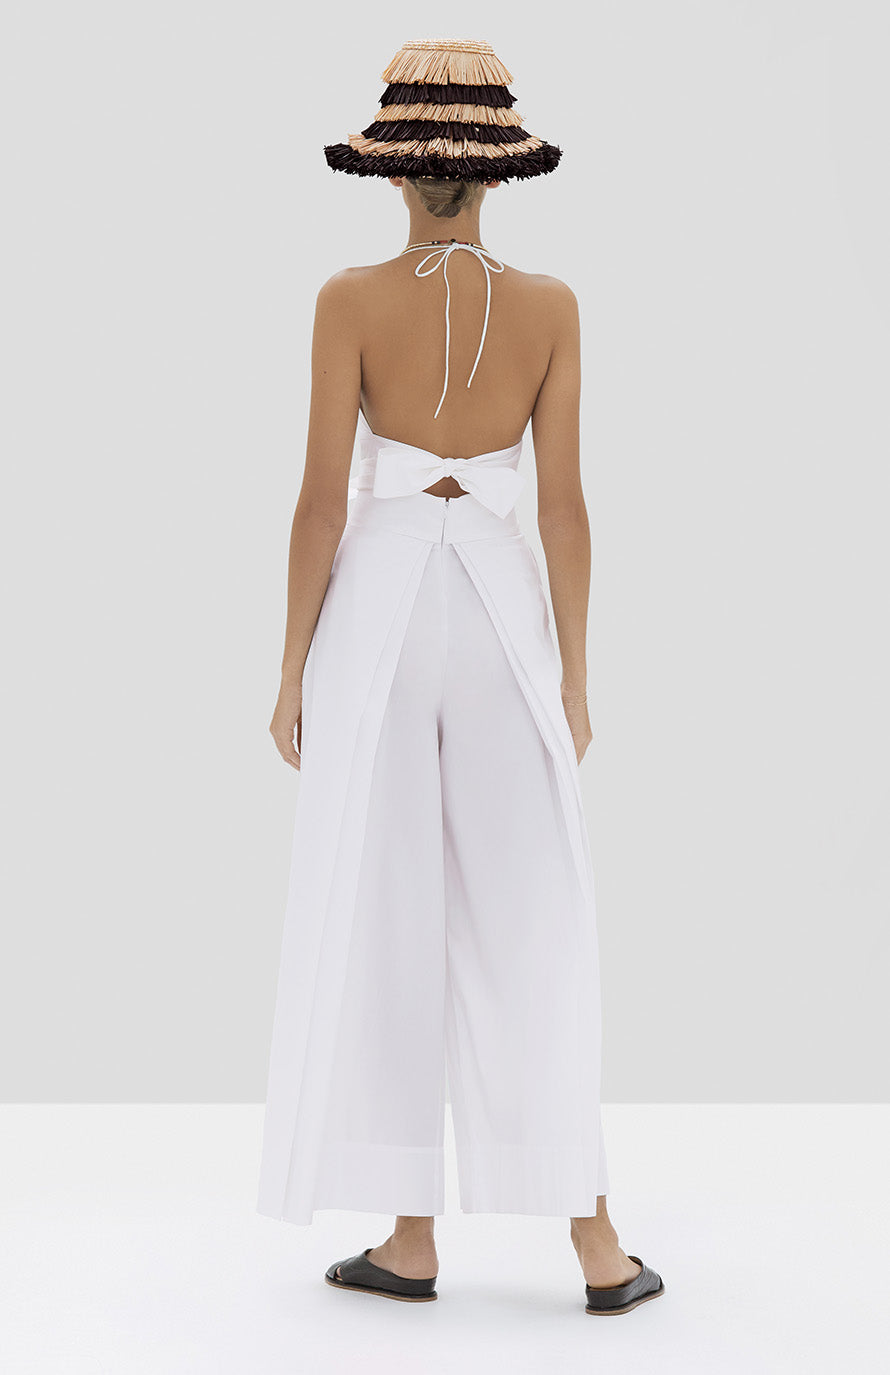 Alexis Linos Top and Bandol Pant in White from Spring Summer 2020 Collection - Rear View